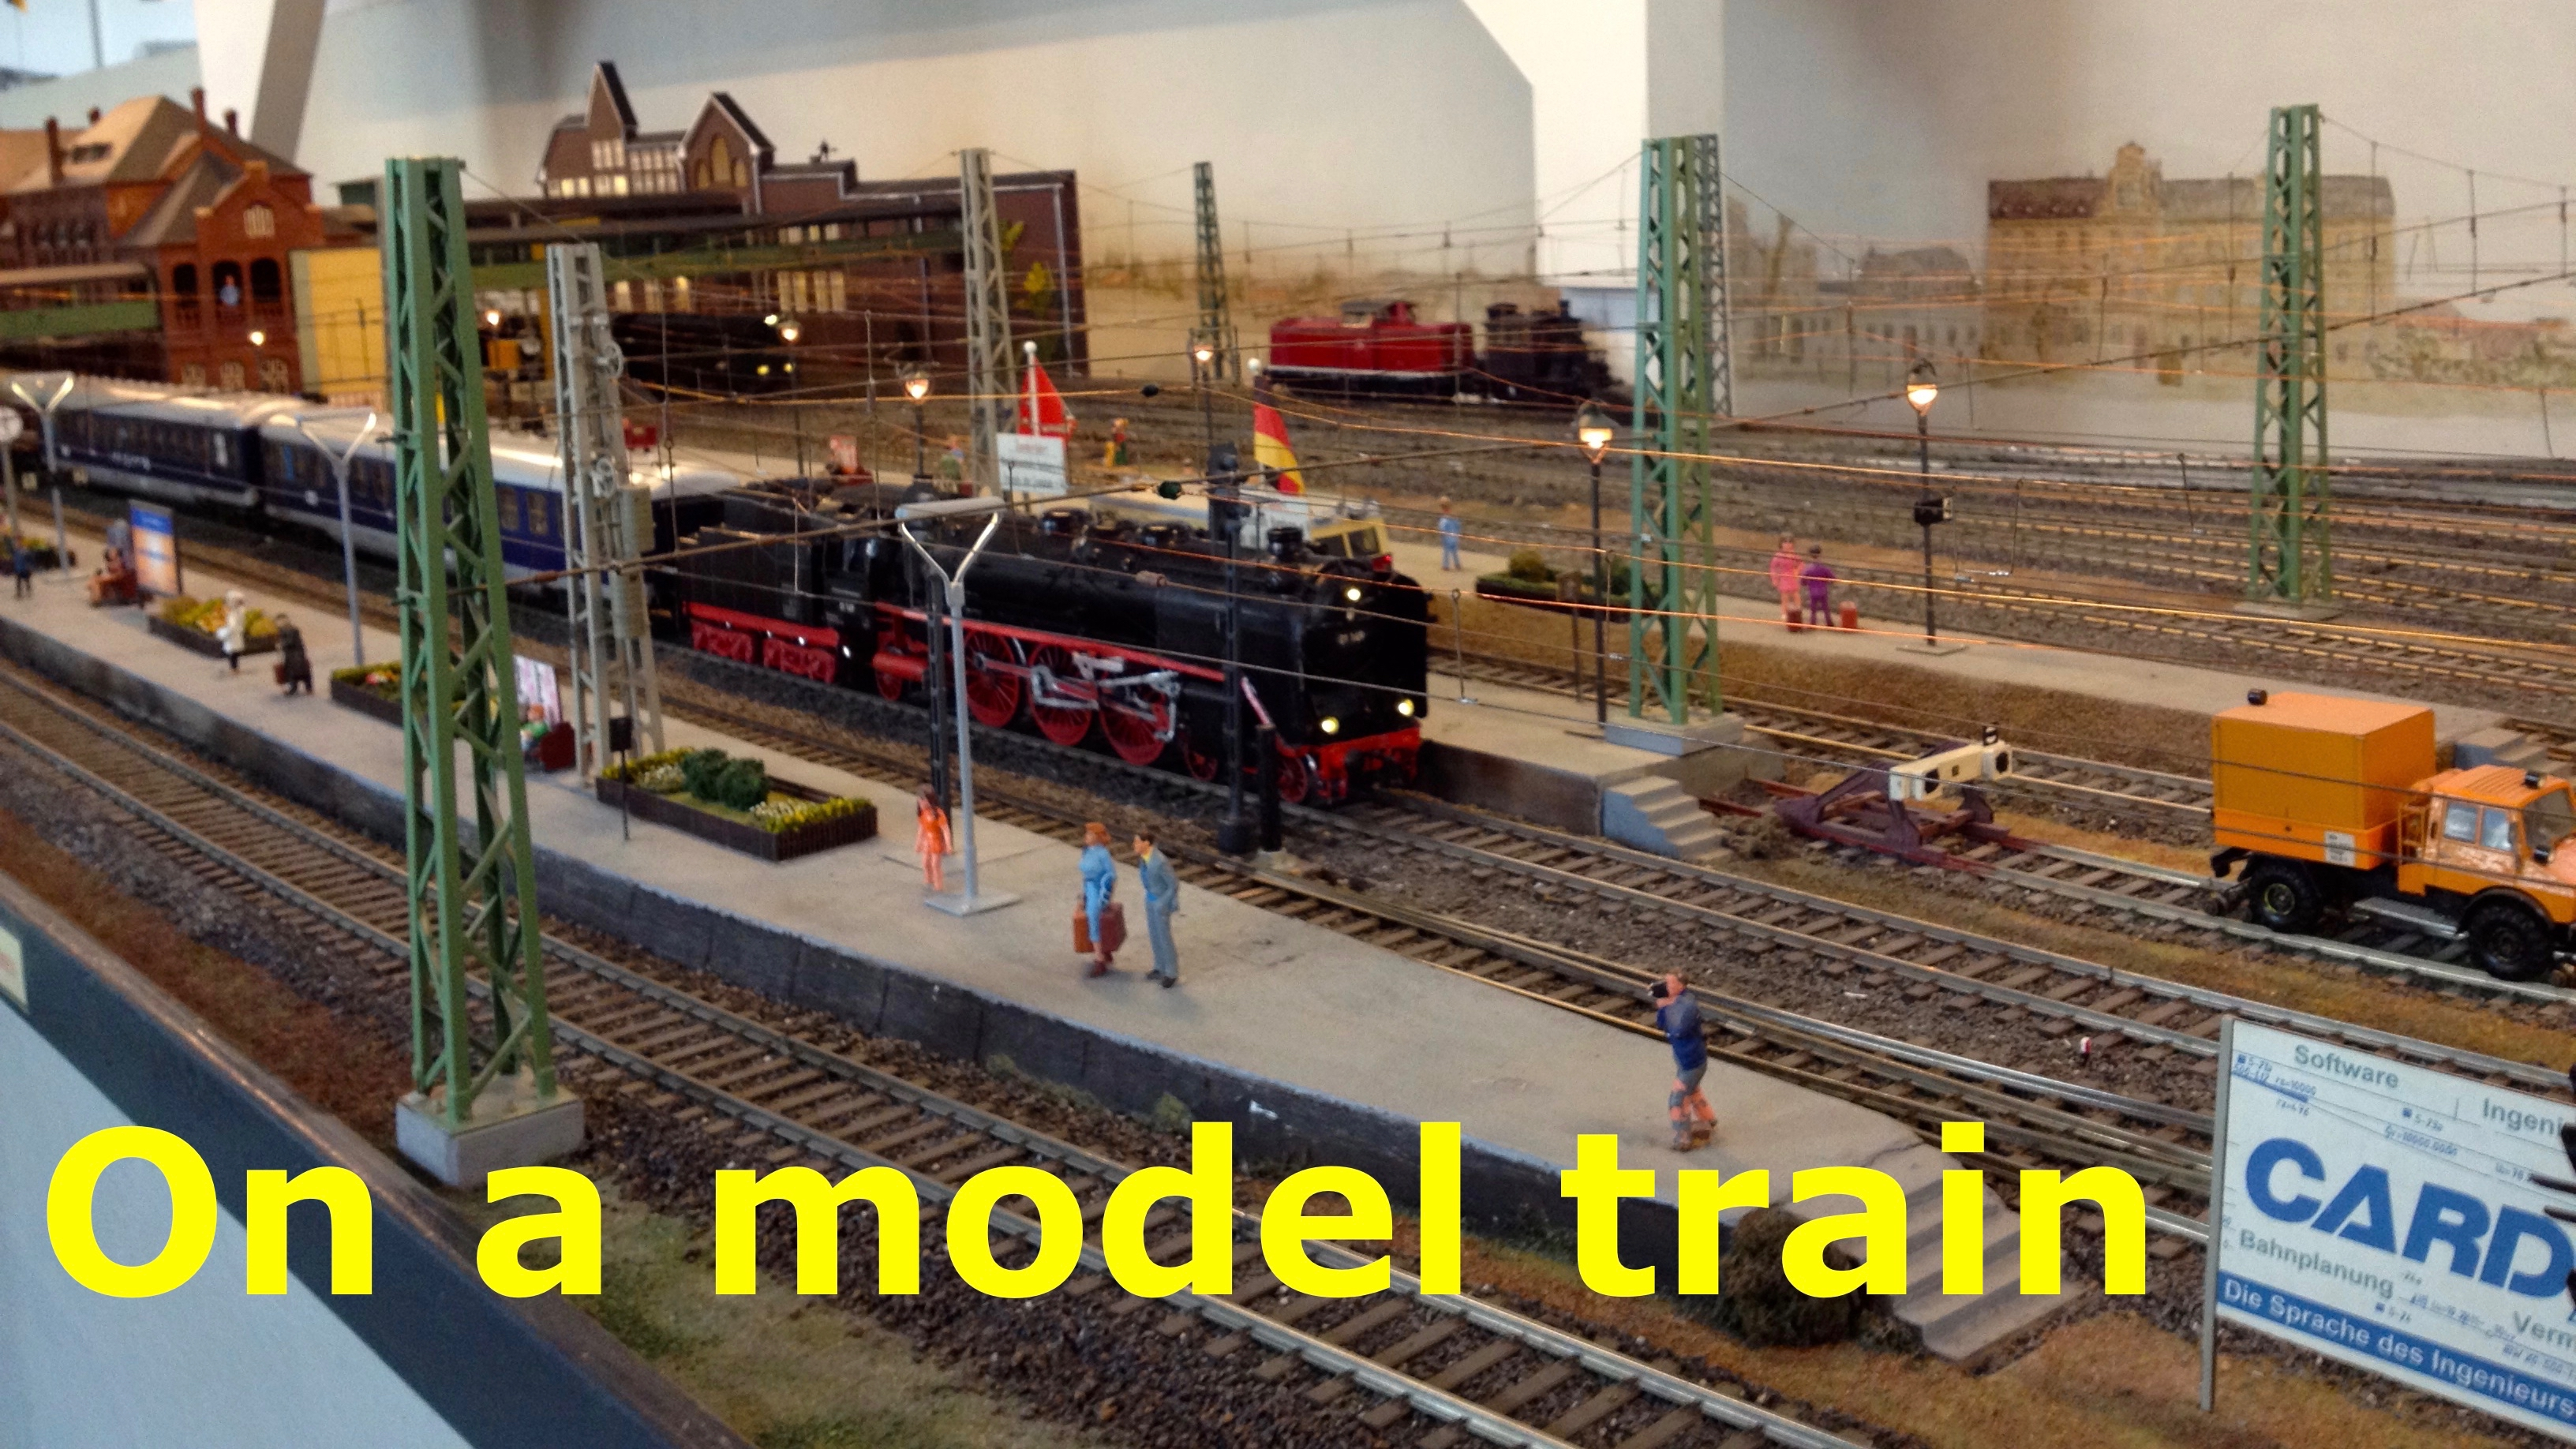 The title card from my short video showing a model rail diorama with a multi track layout showing a black classic steam engine and carriages passing through a station where some figurines are waiting on a platform with the title On a Model Train